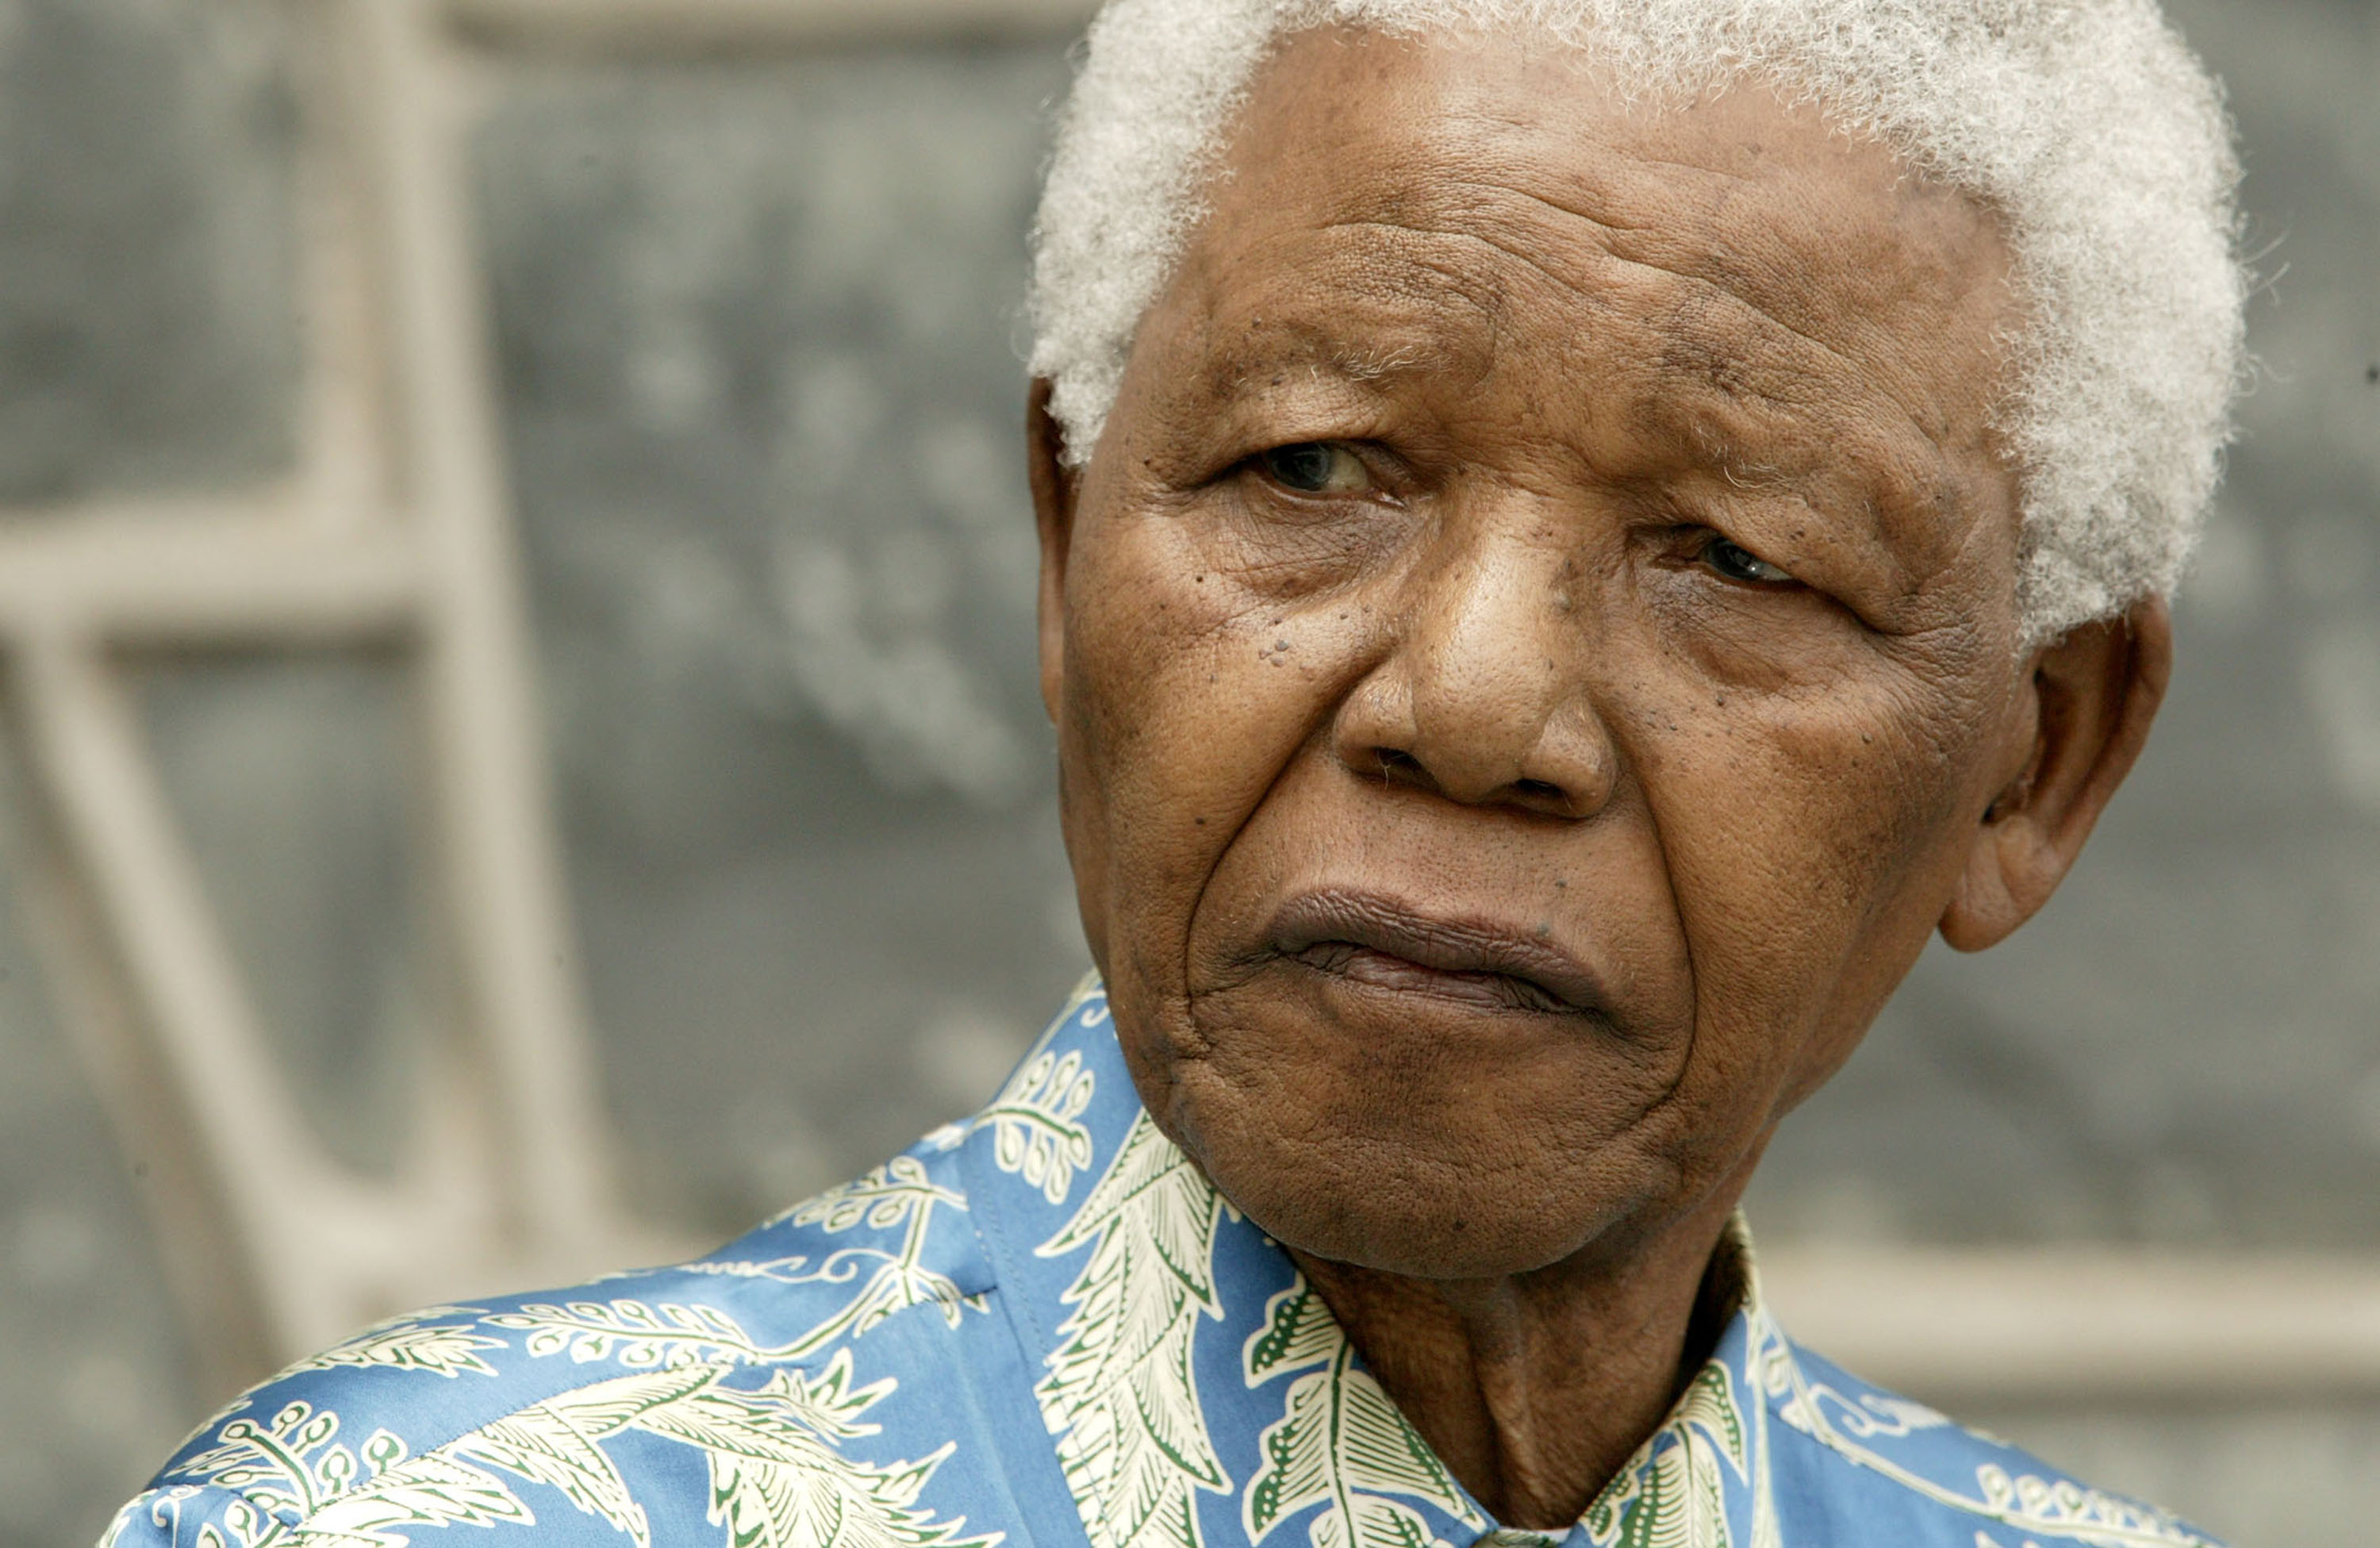 Nelson Mandela 100 years on from birth